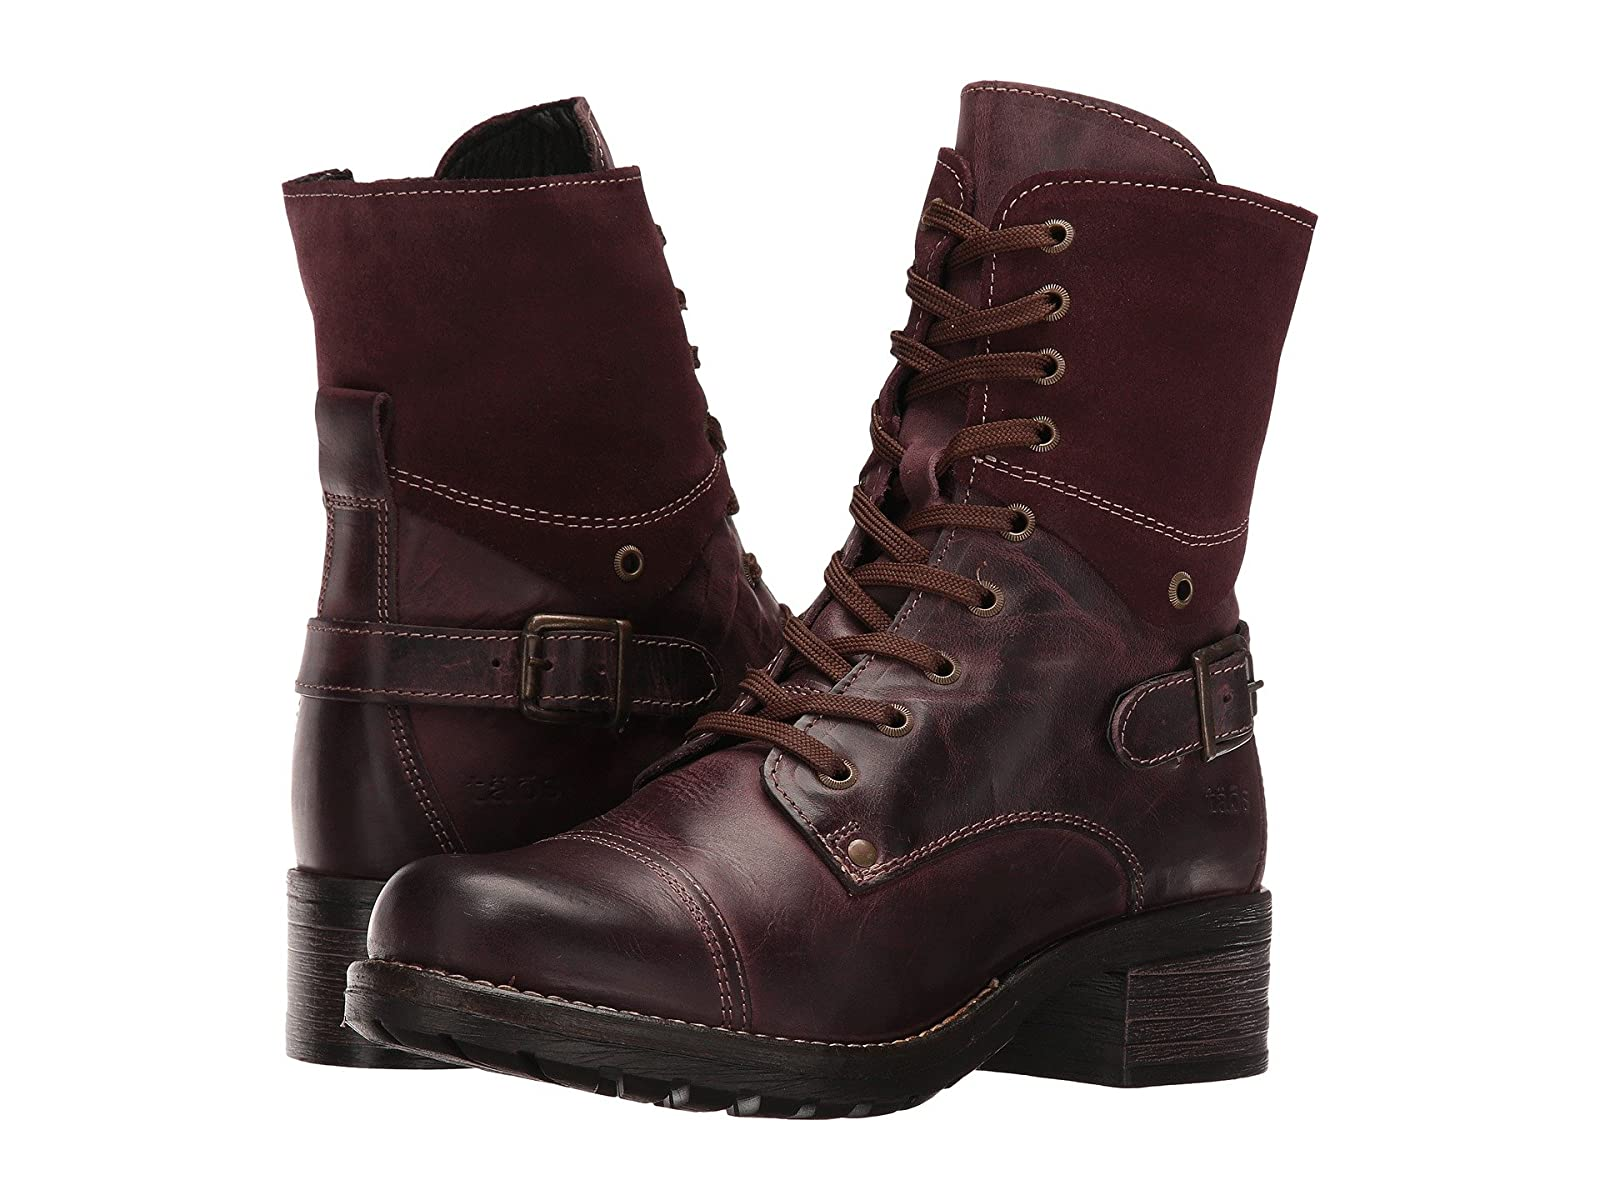 Taos Footwear CraveEconomical and quality shoes